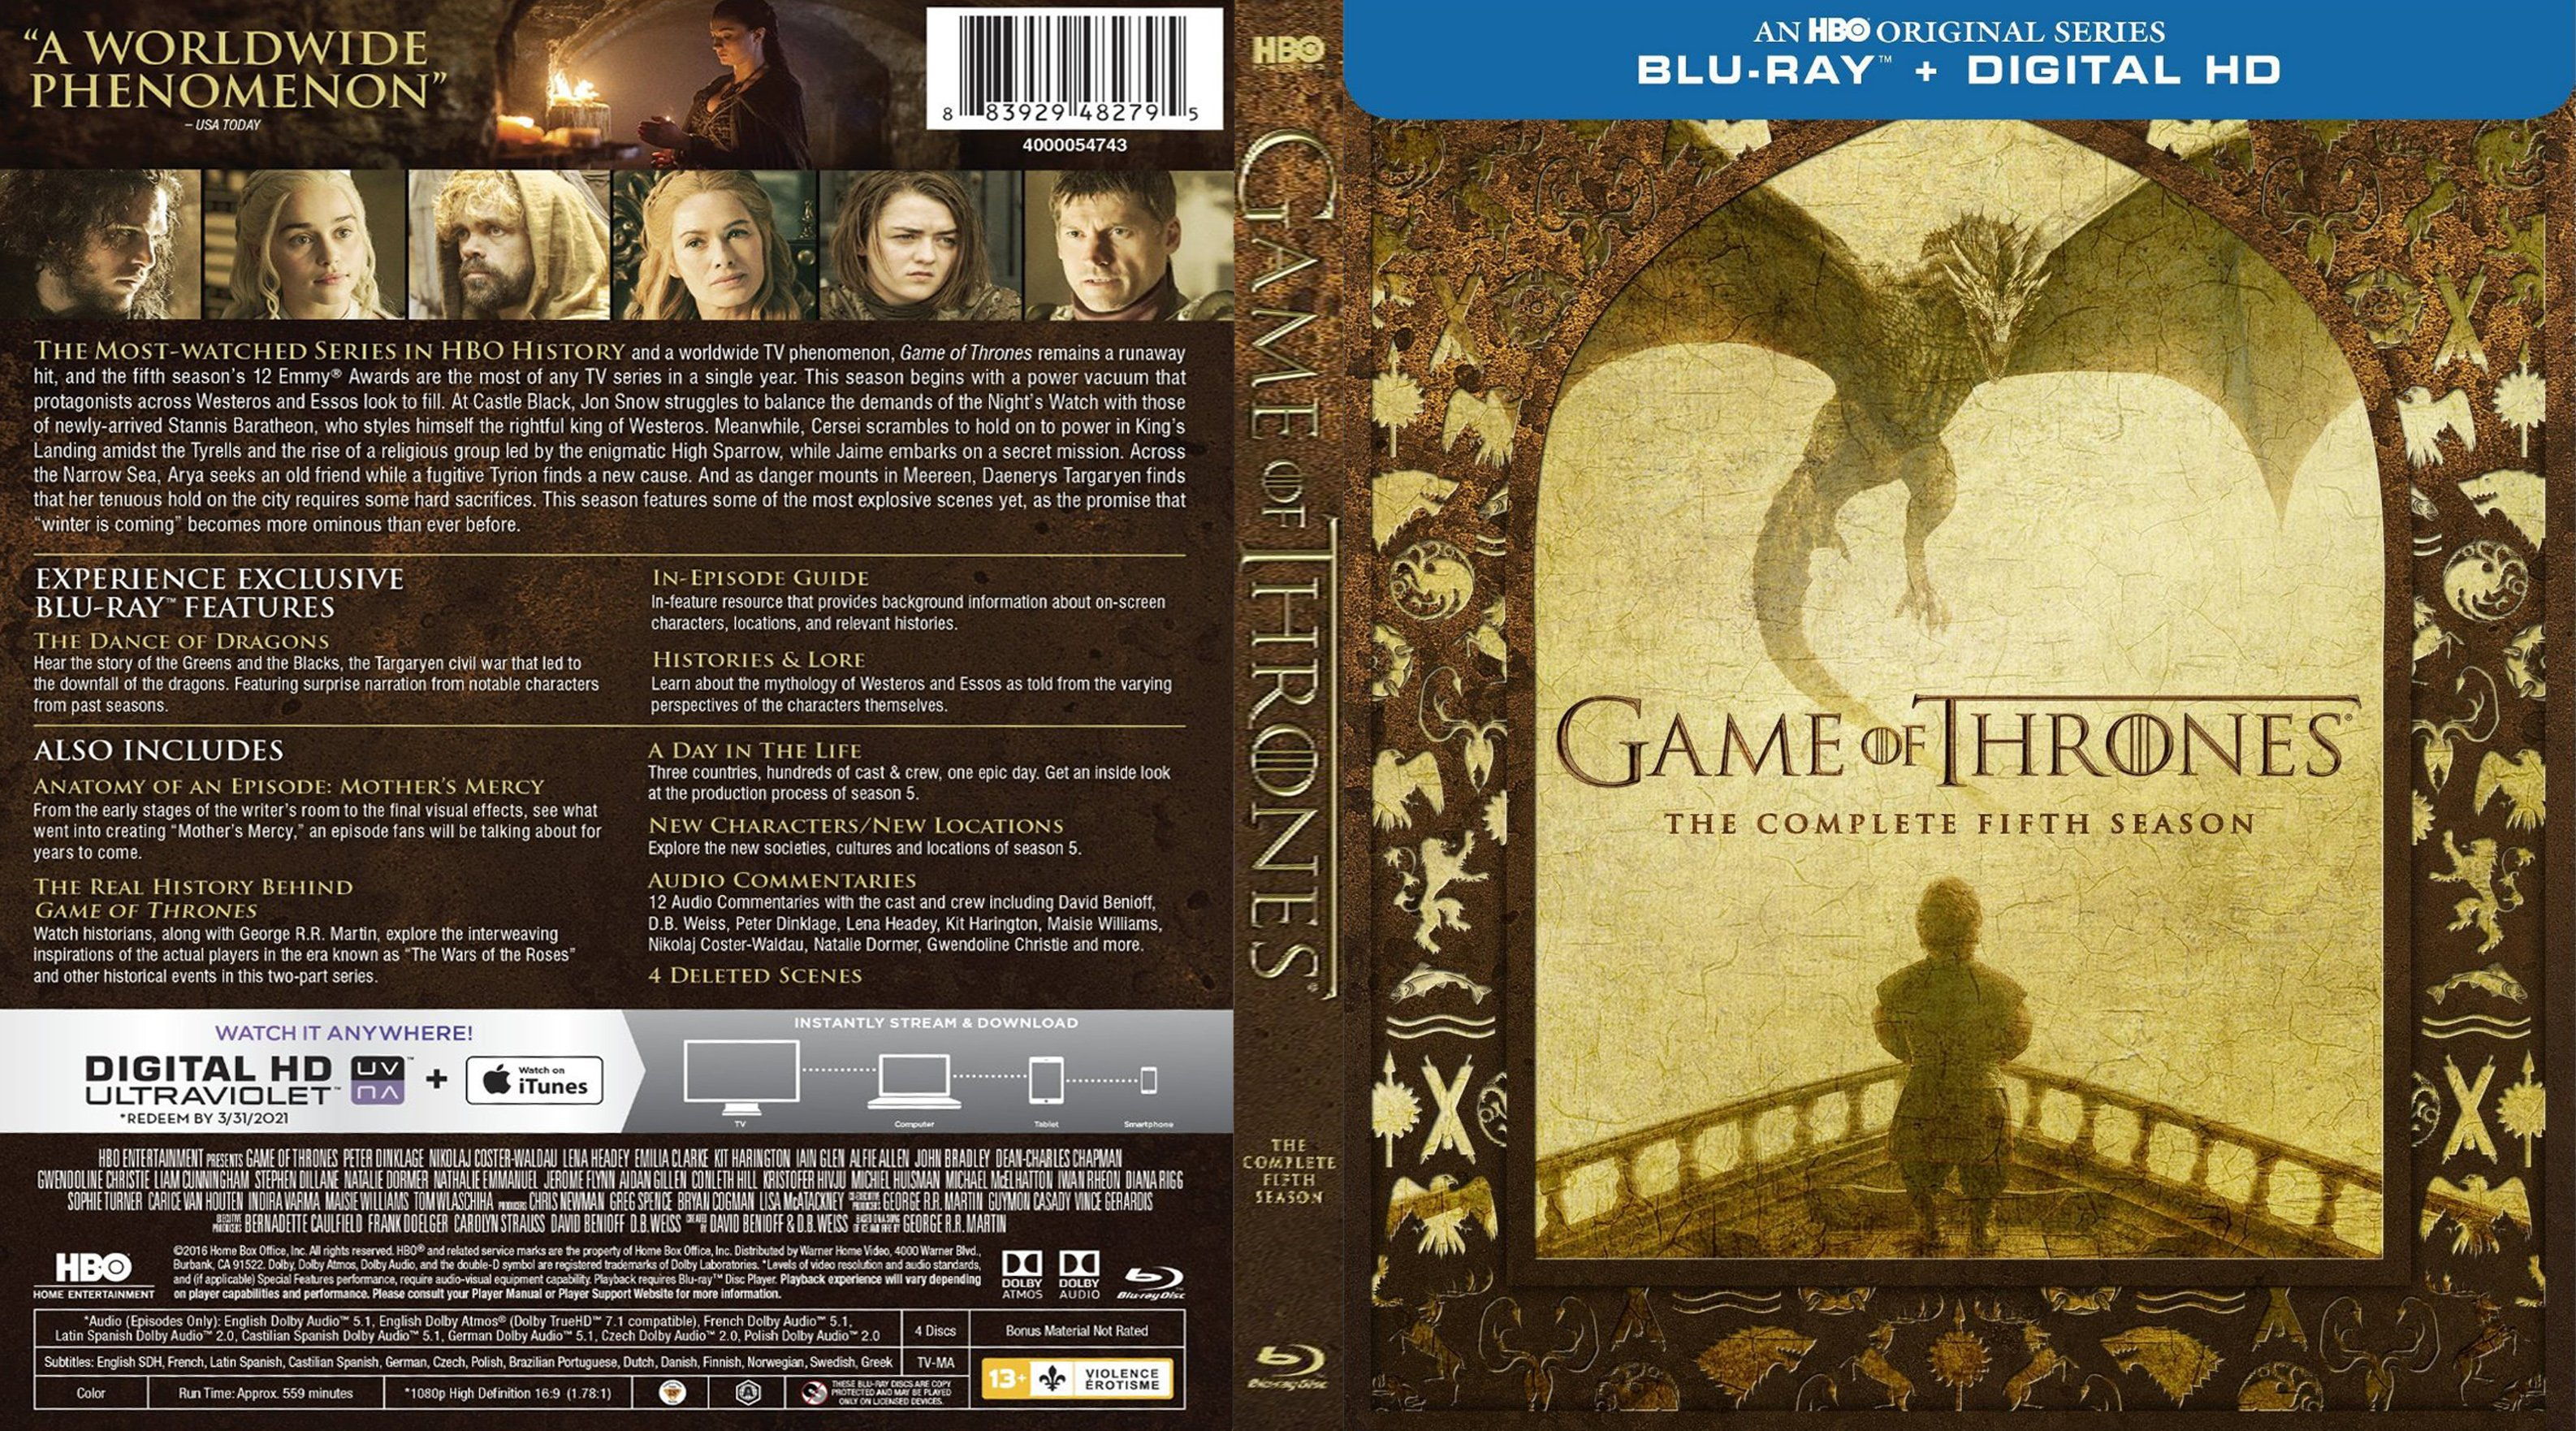 Game of thrones series 5 on dvd / Acqualina resort & spa on